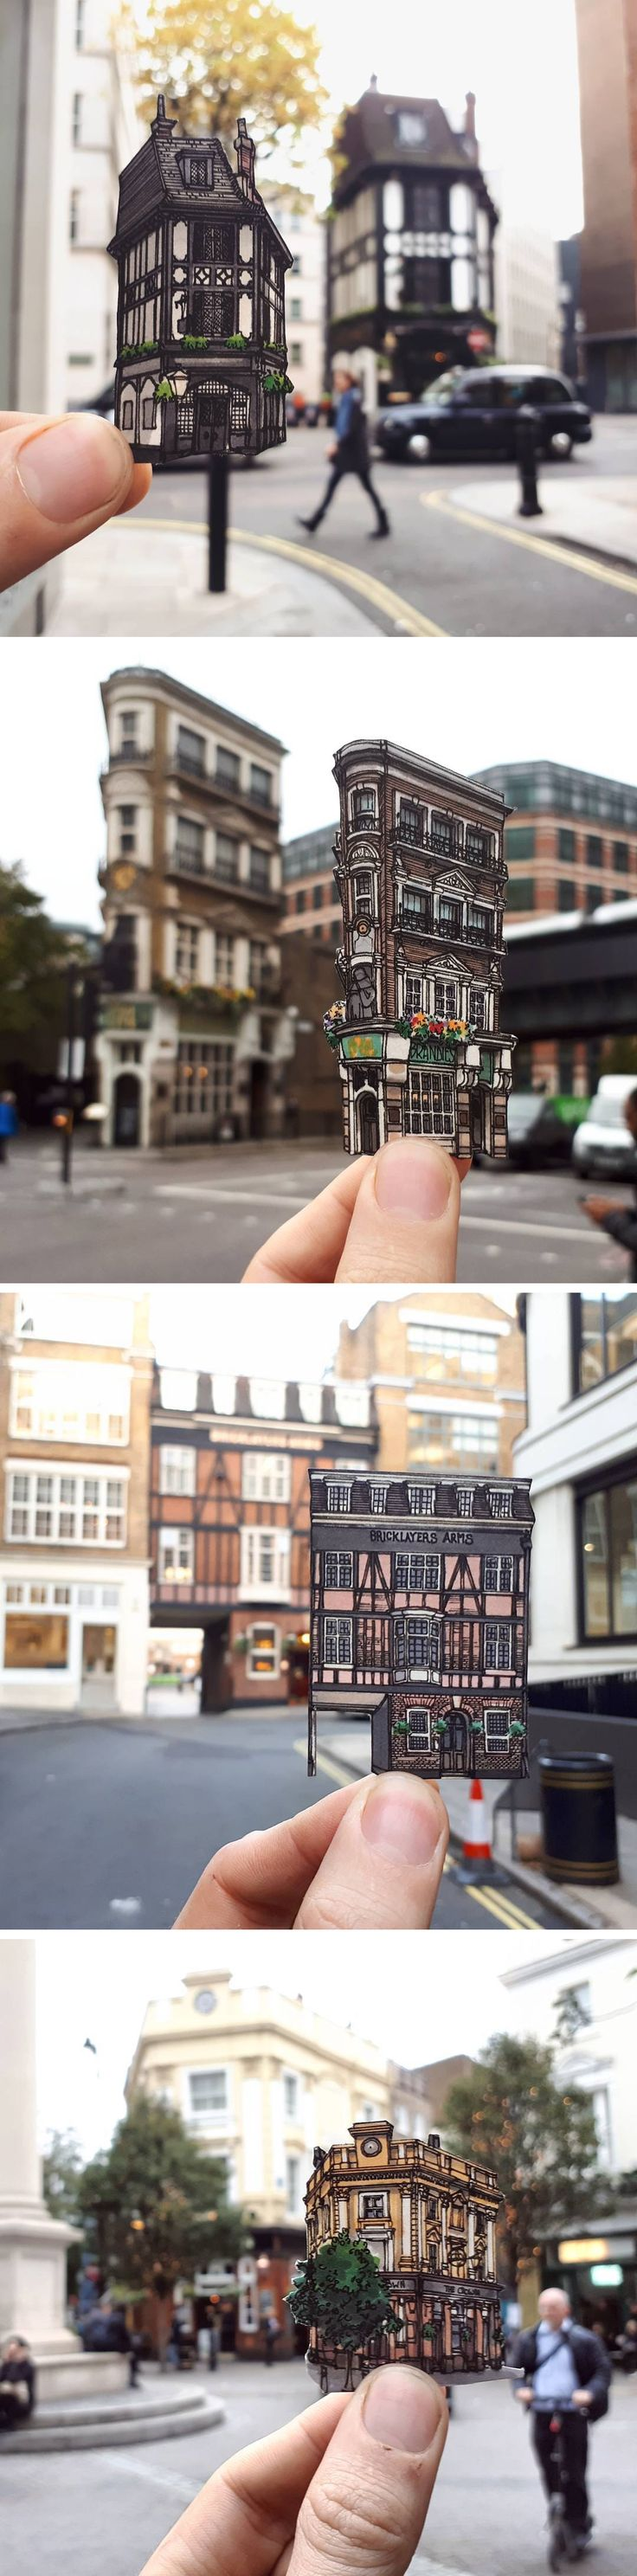 Cut-Out Ink and Pen Illustrations of London's Oldest Pubs and Other Landmarks by Maxwell Tilse